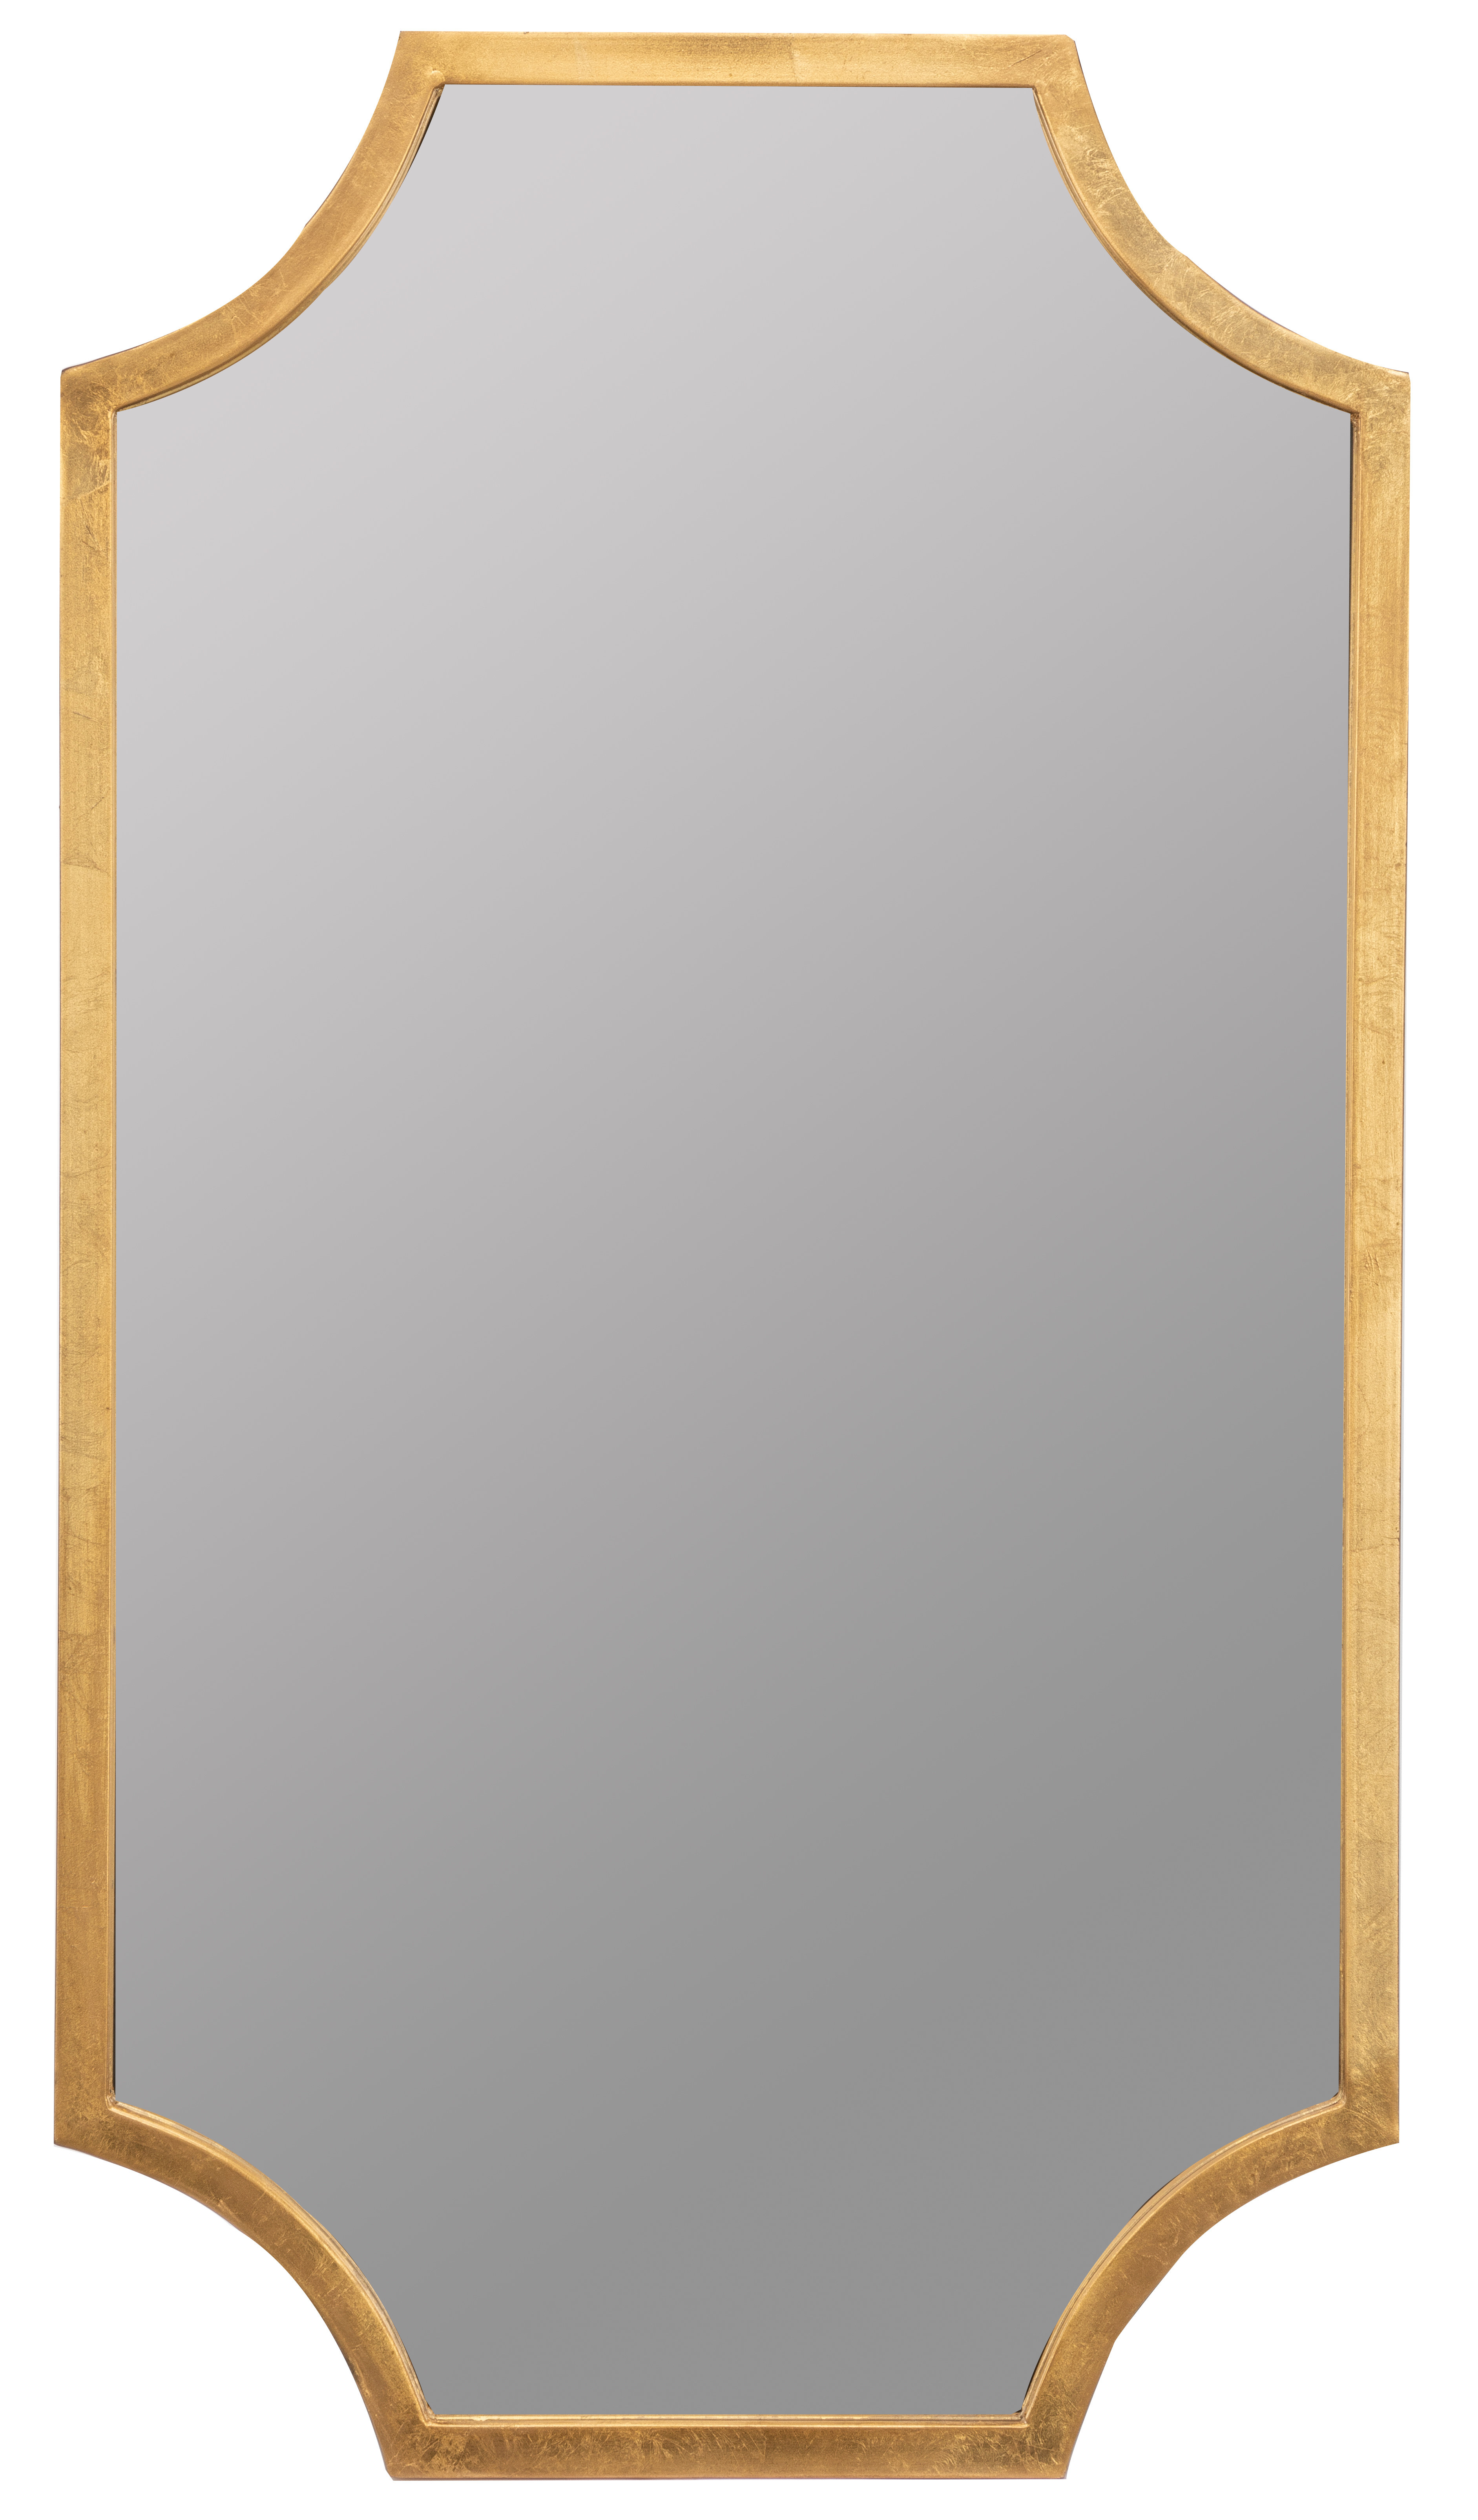 Brought Accent Mirror For Guidinha Modern & Contemporary Accent Mirrors (View 12 of 30)